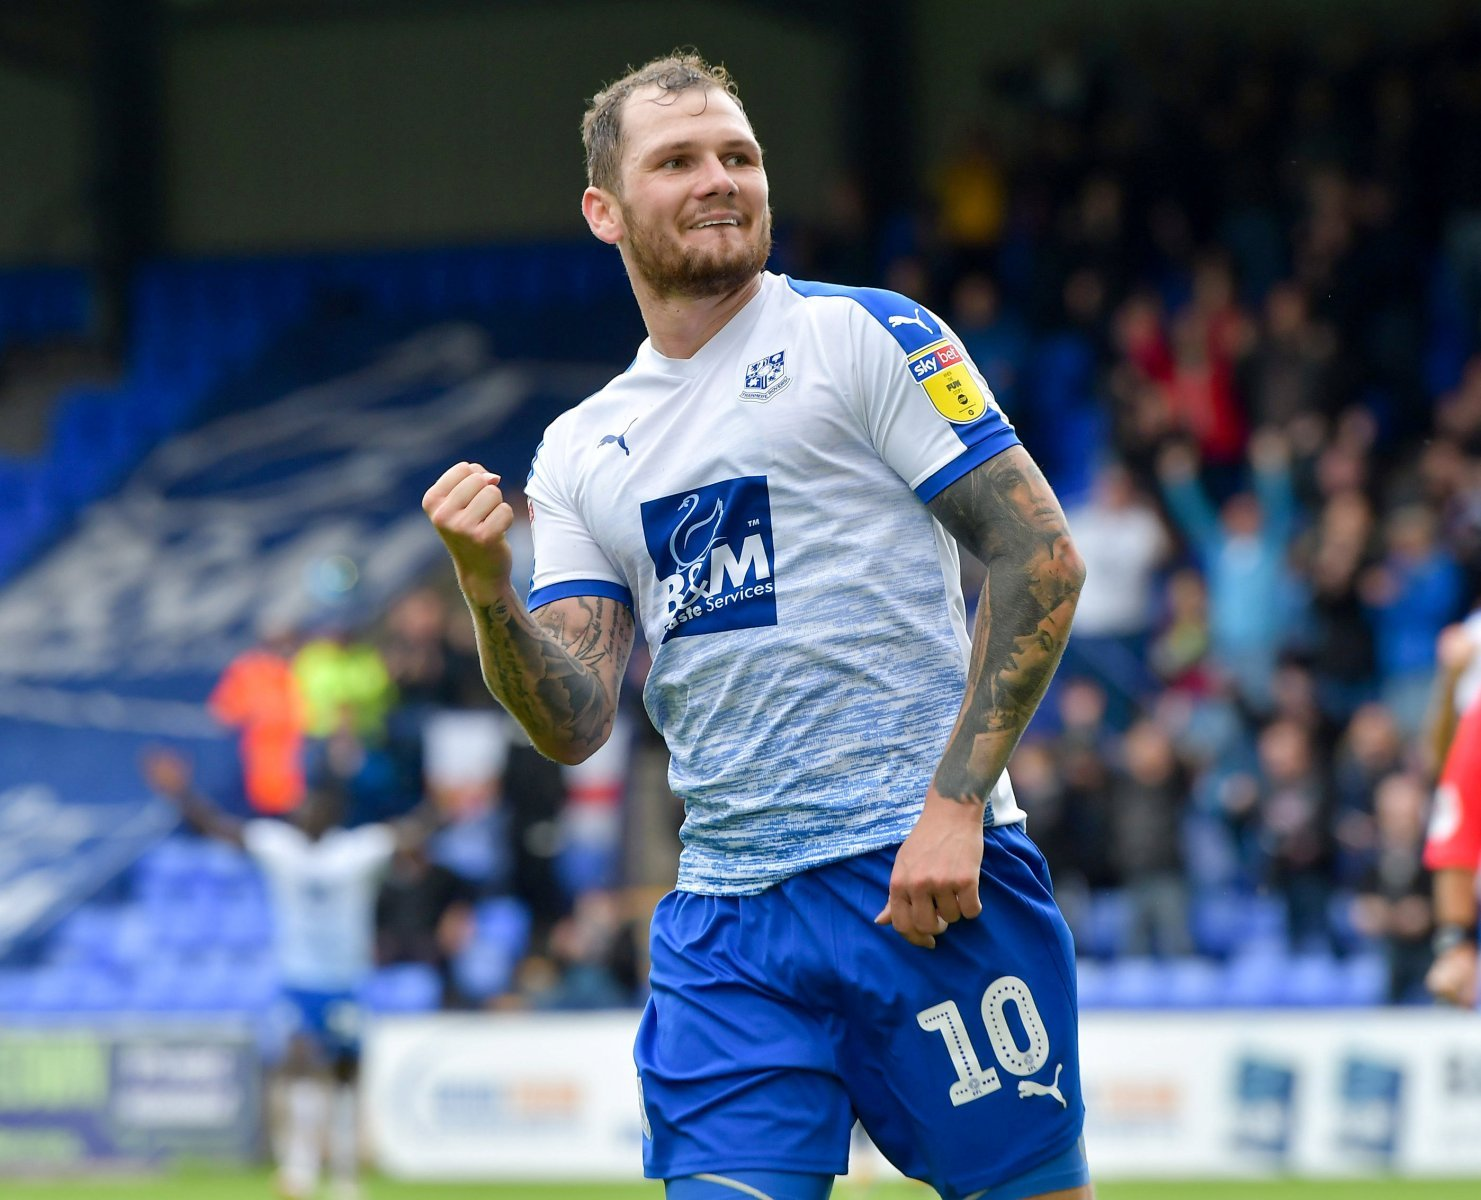 Ipswich: James Norwood could be fit for Tractor Boys' next match